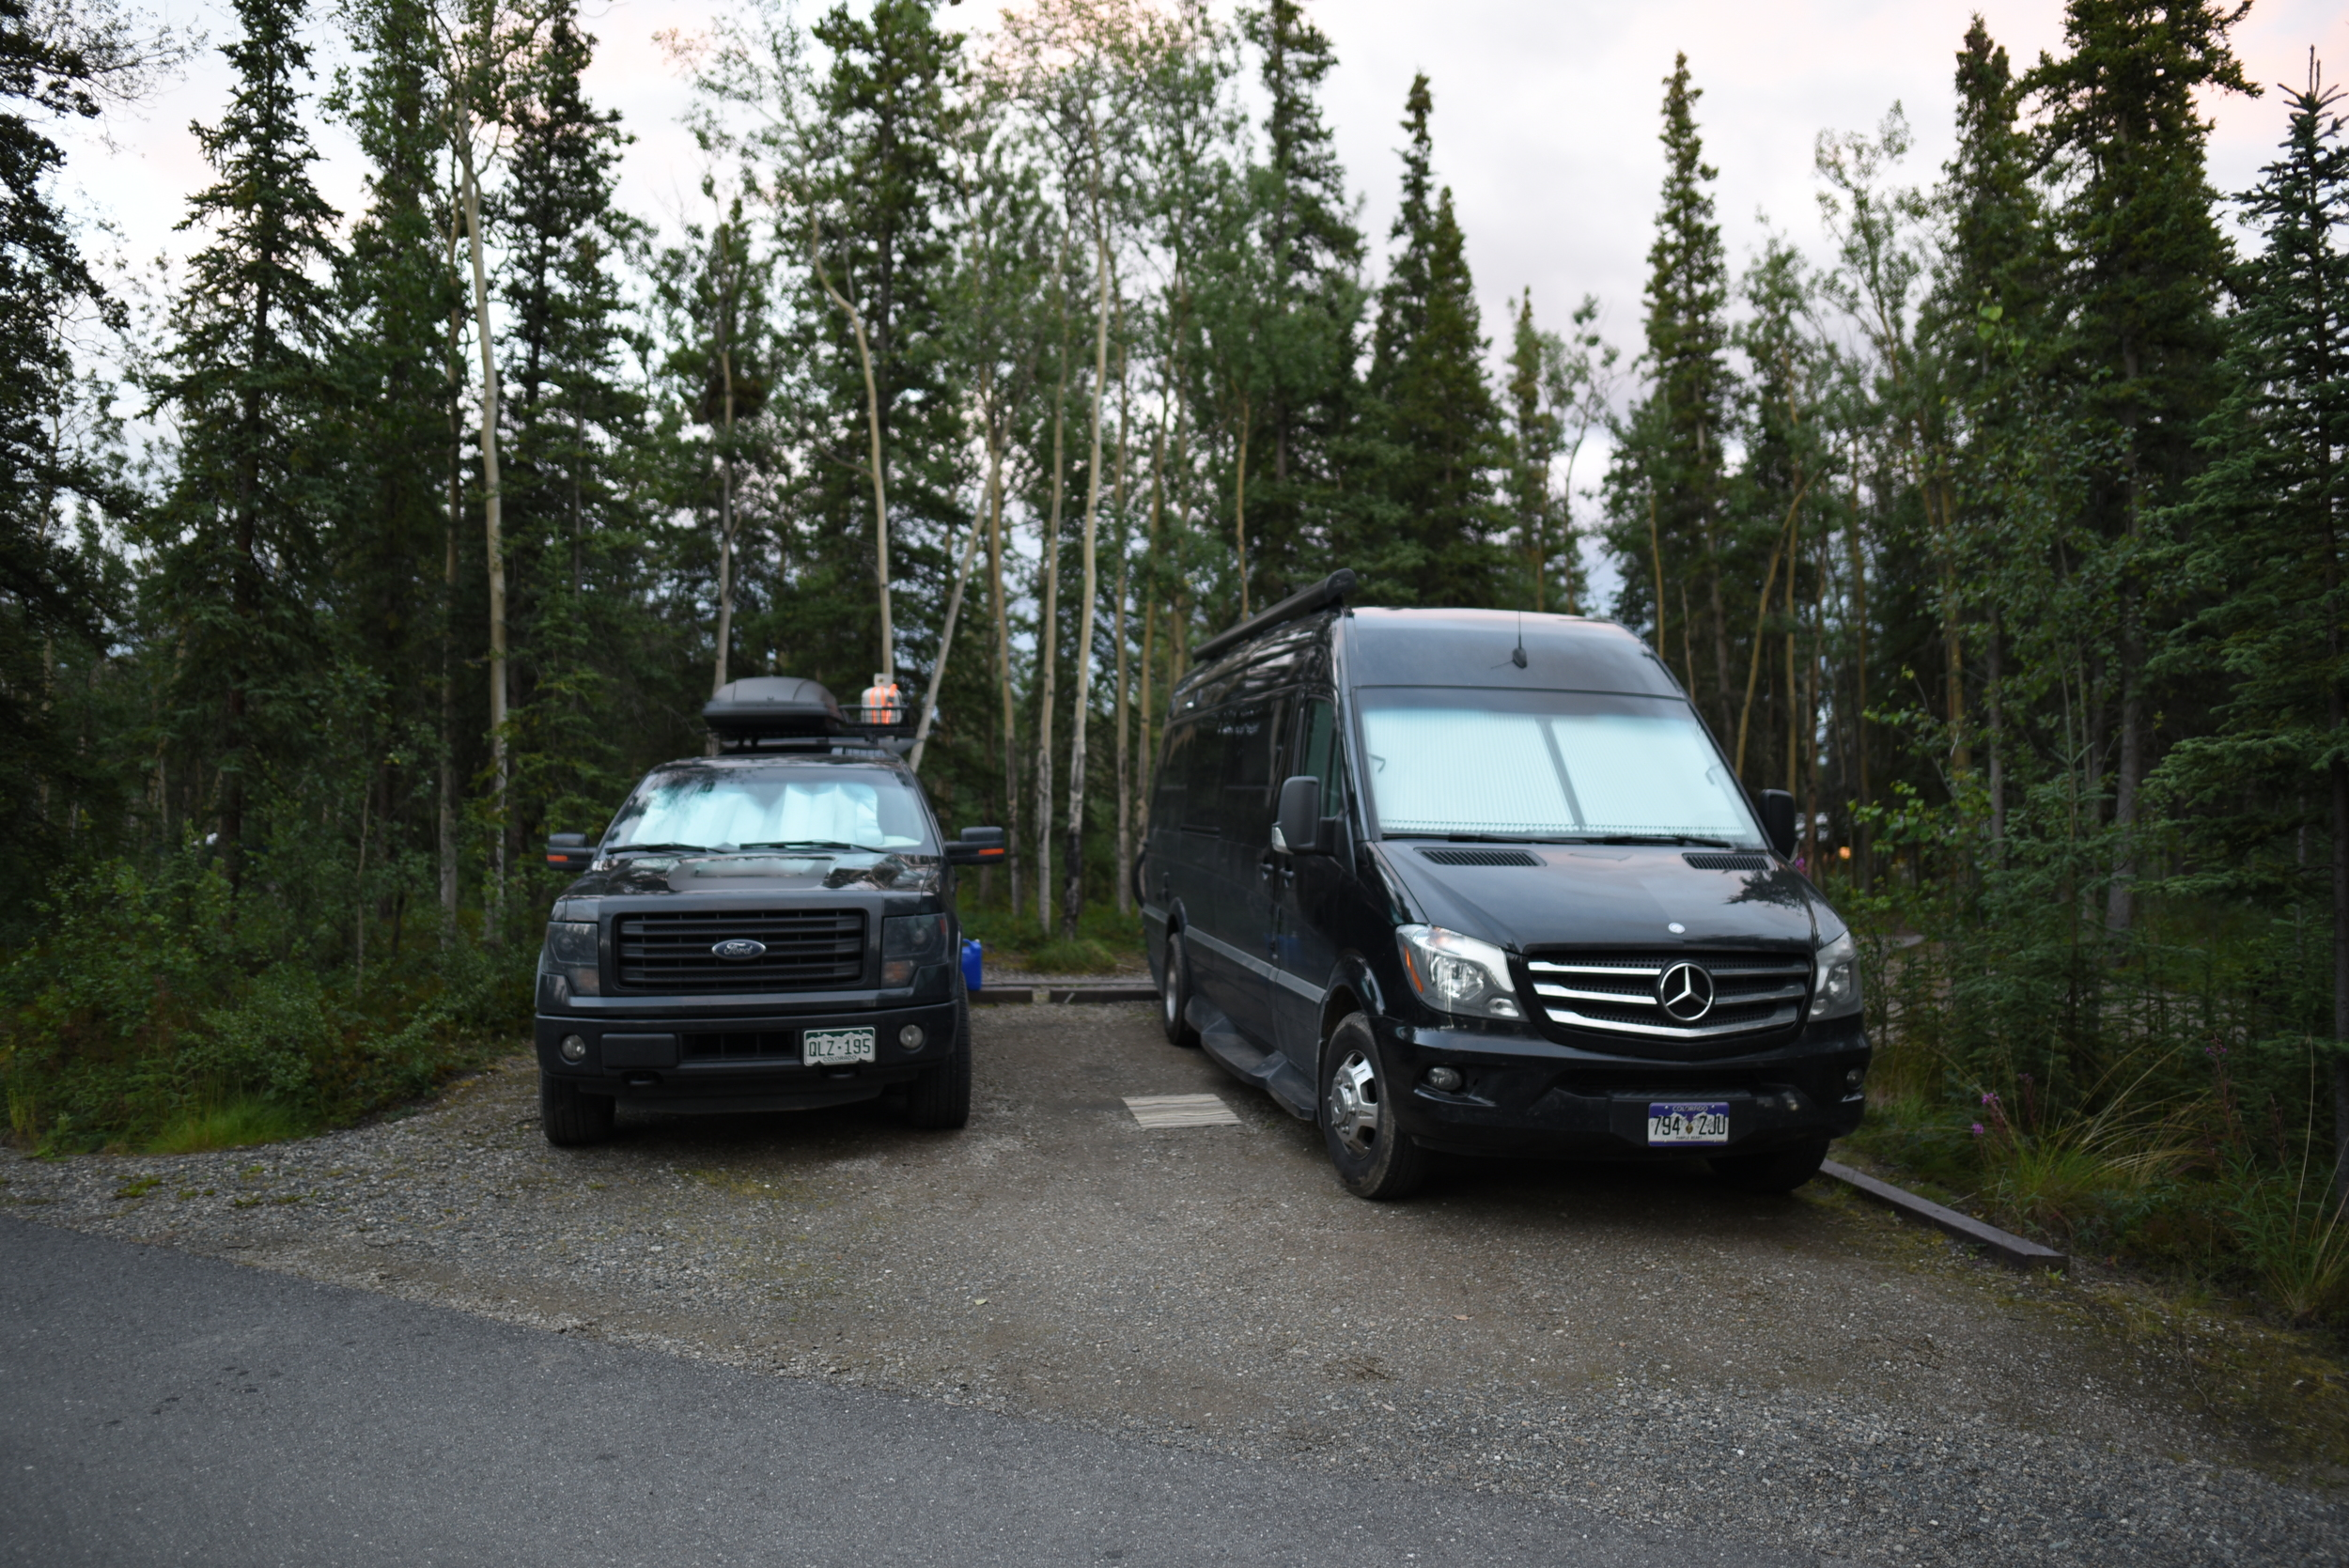 The black beasts camping together